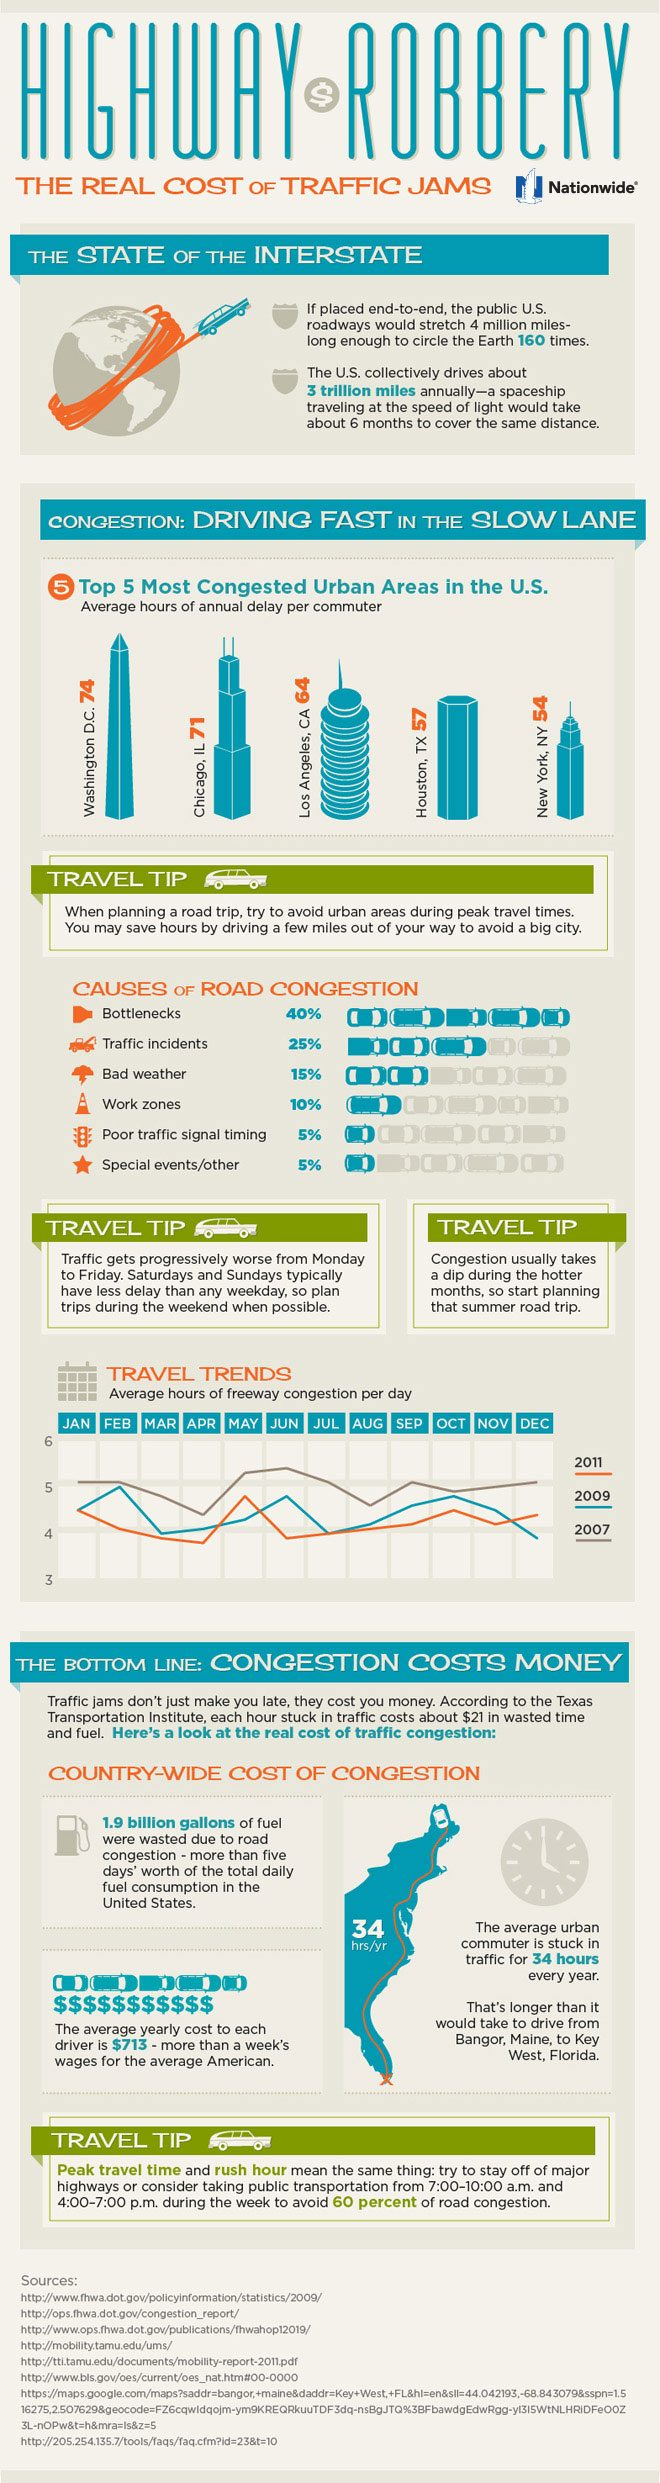 Sitting & Fuming: Traffic Congestion Statistics [Infographic]